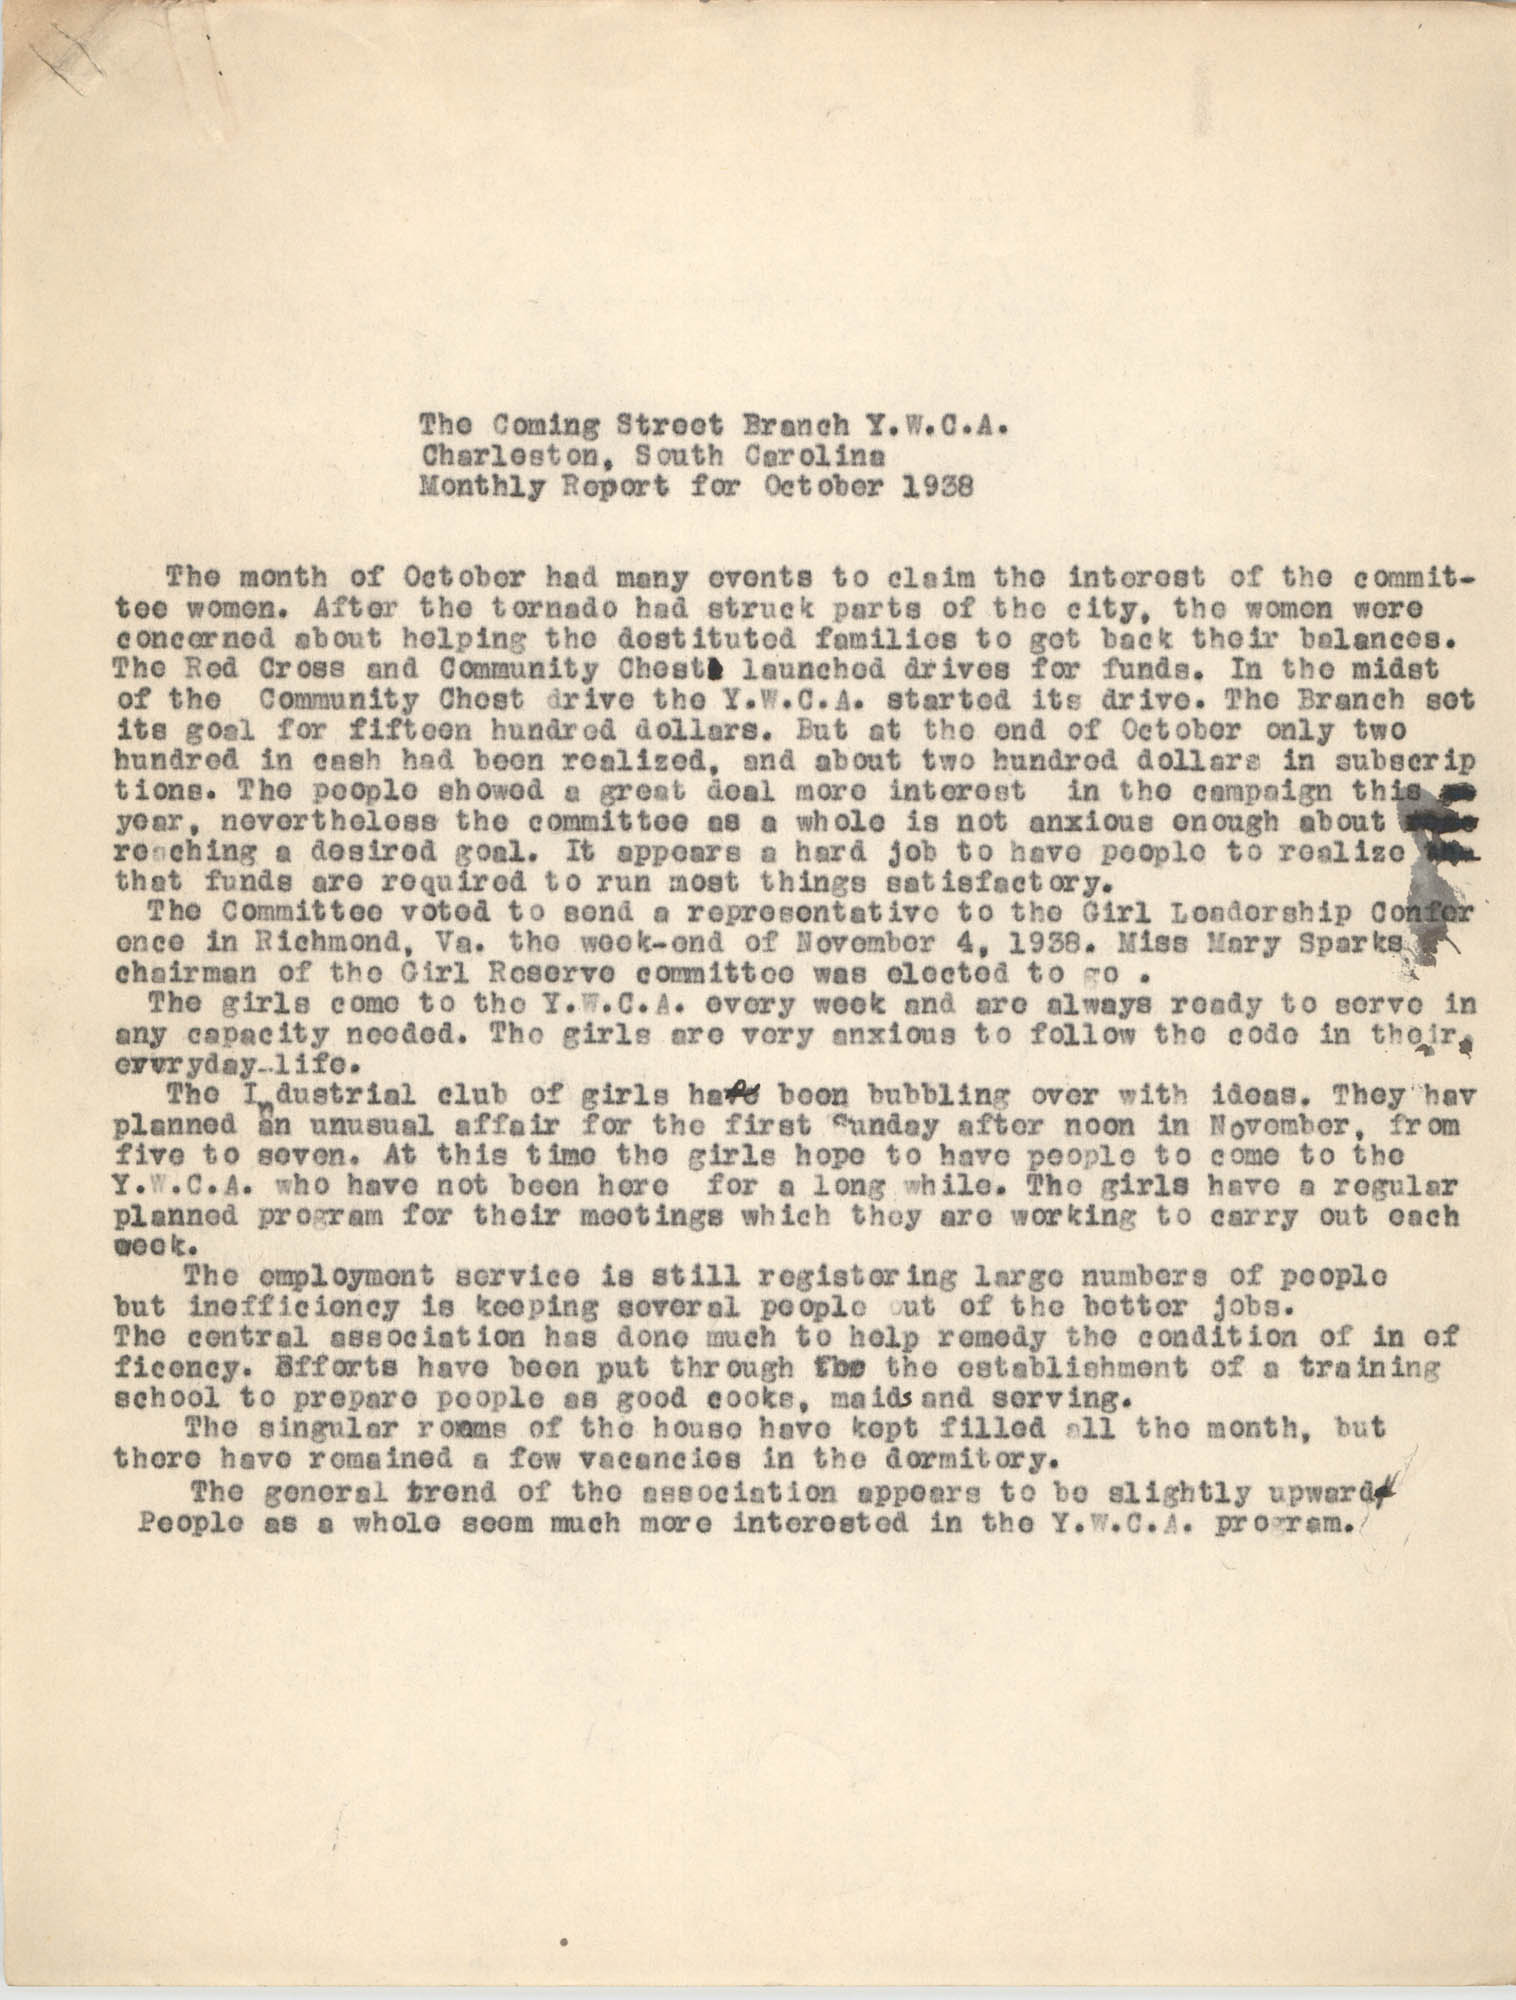 Monthly Report for the Coming Street Y.W.C.A., October 1938